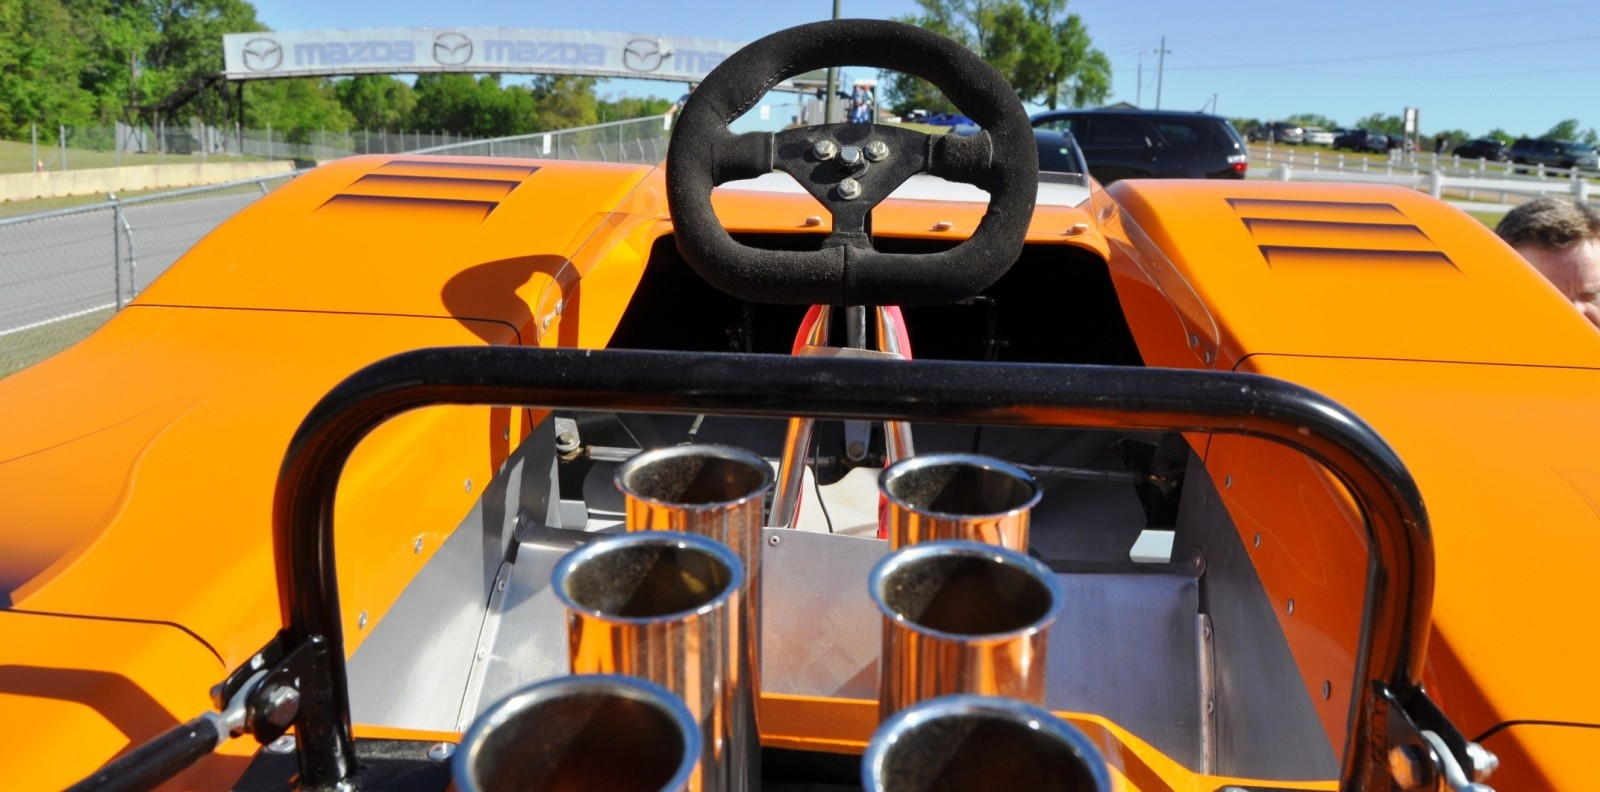 McLaren M8B Go-Kart Seeking Posh New Home, McLaren Owner Strongly Preferred 14